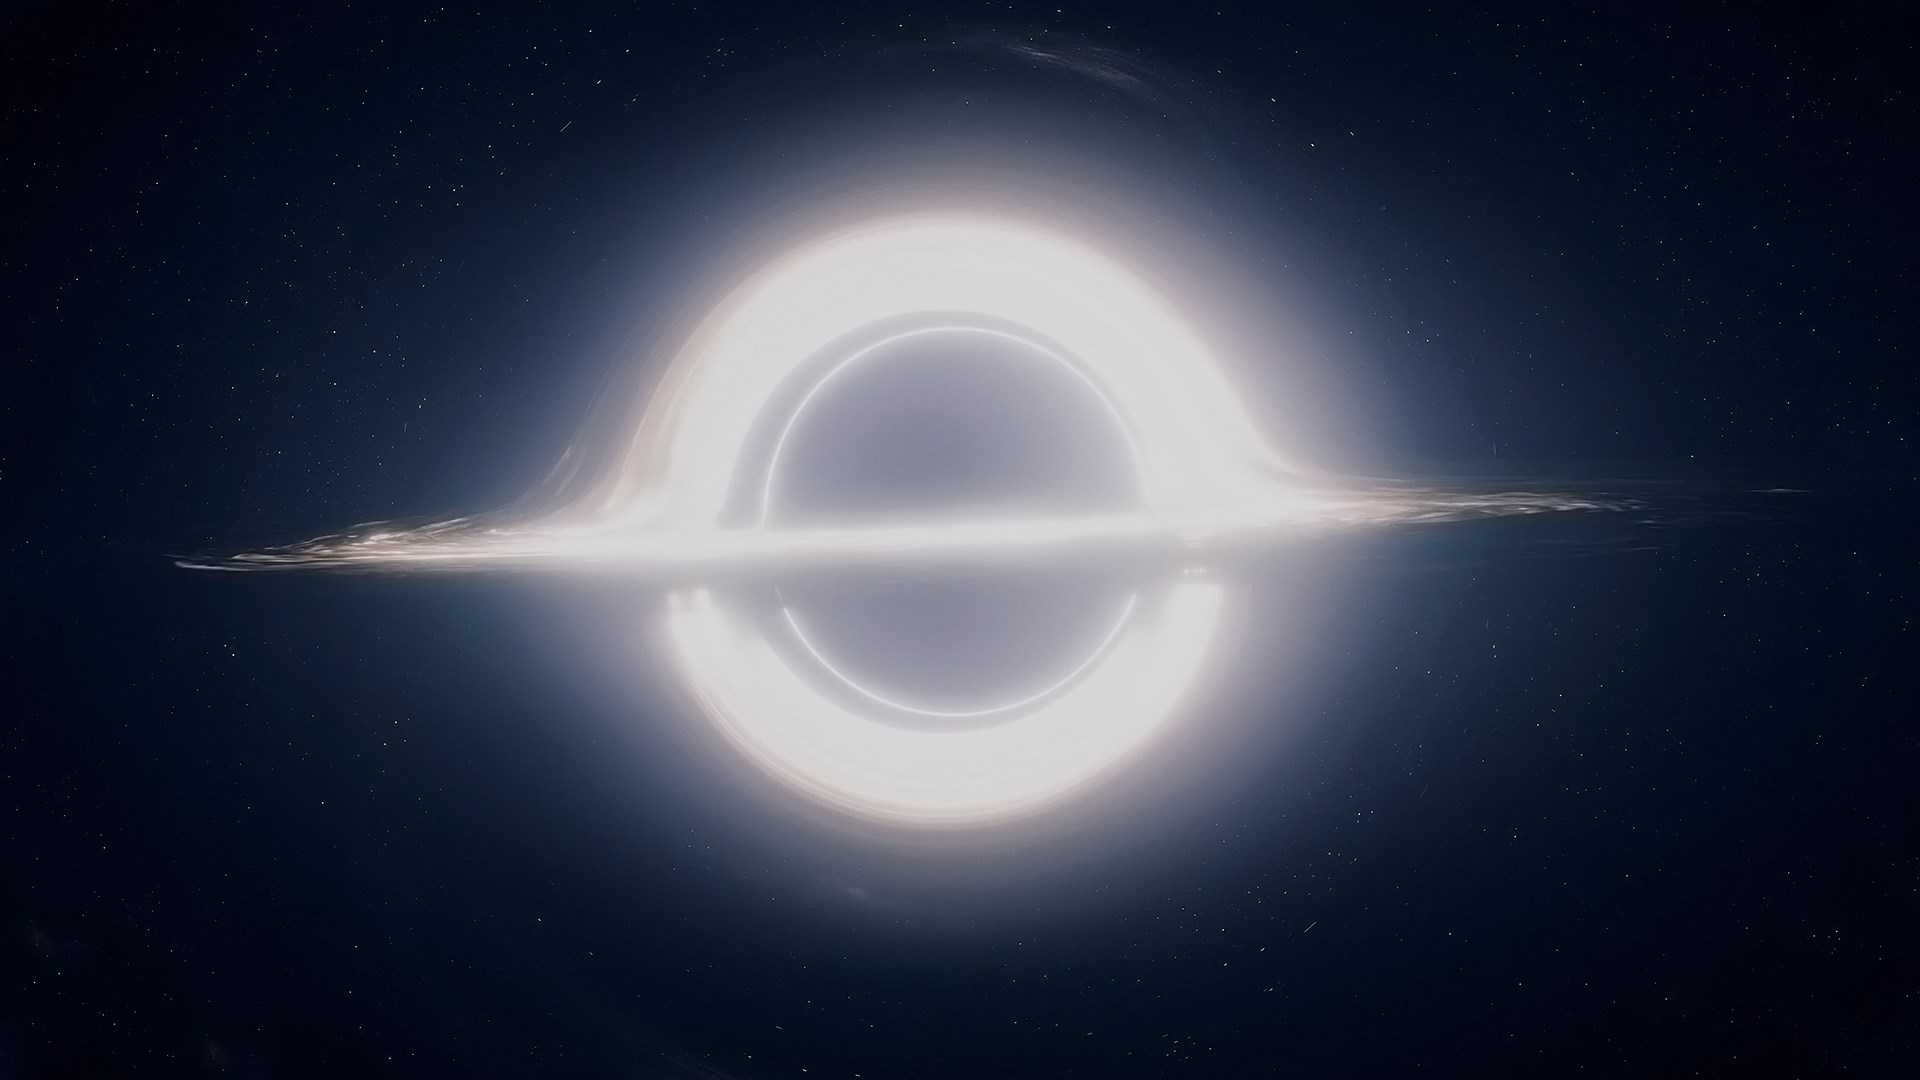 Interstellar Black Hole Vs Real 2345985 Hd Wallpaper